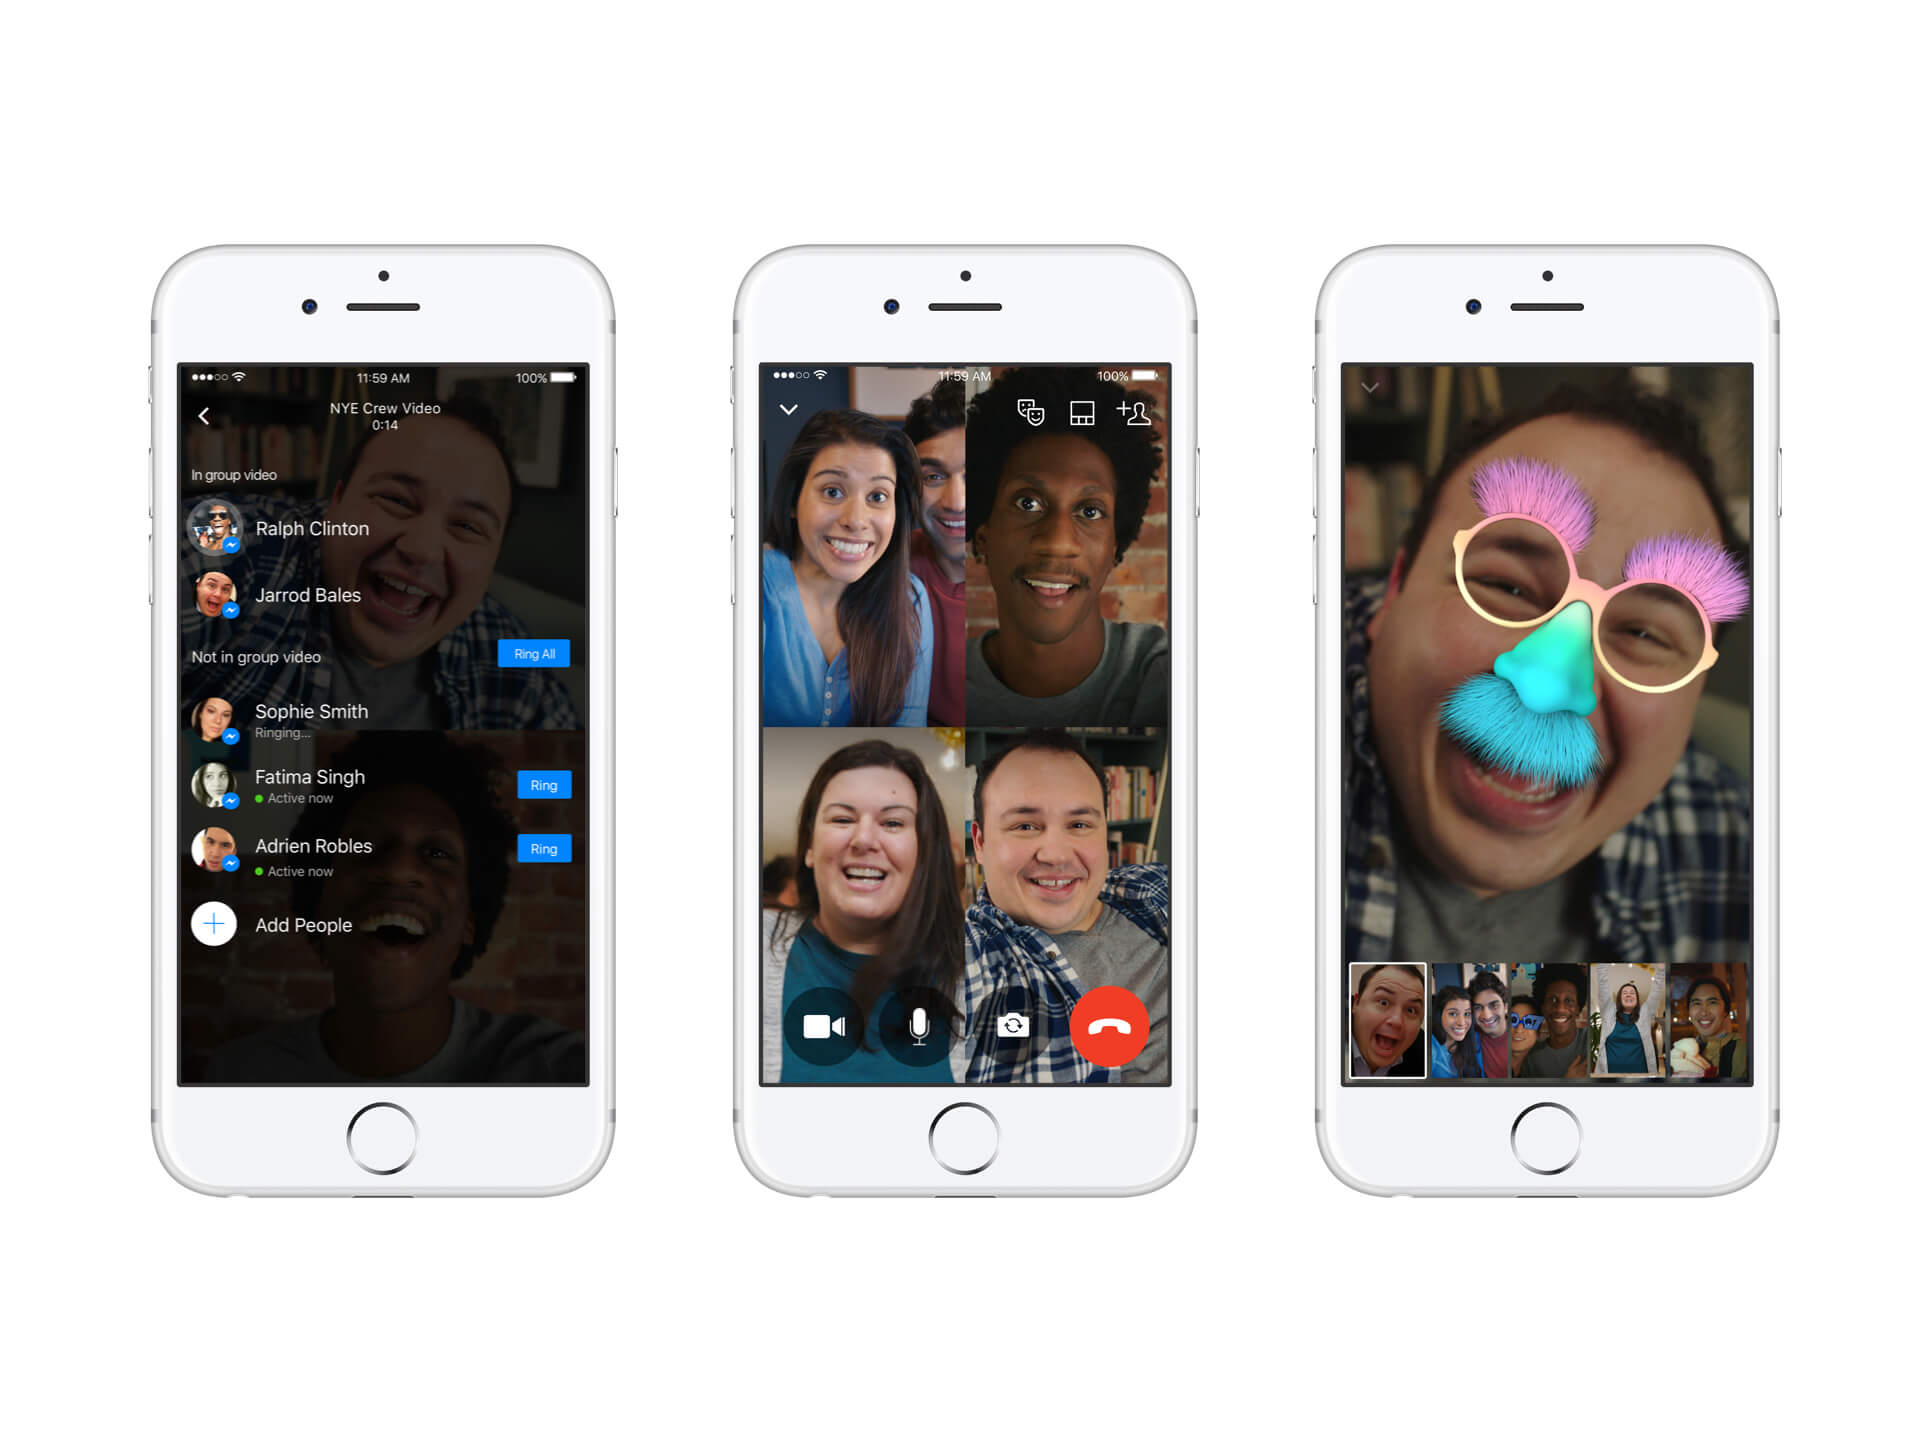 You Can Now Add Friends to Ongoing Video Calls on Facebook Messenger